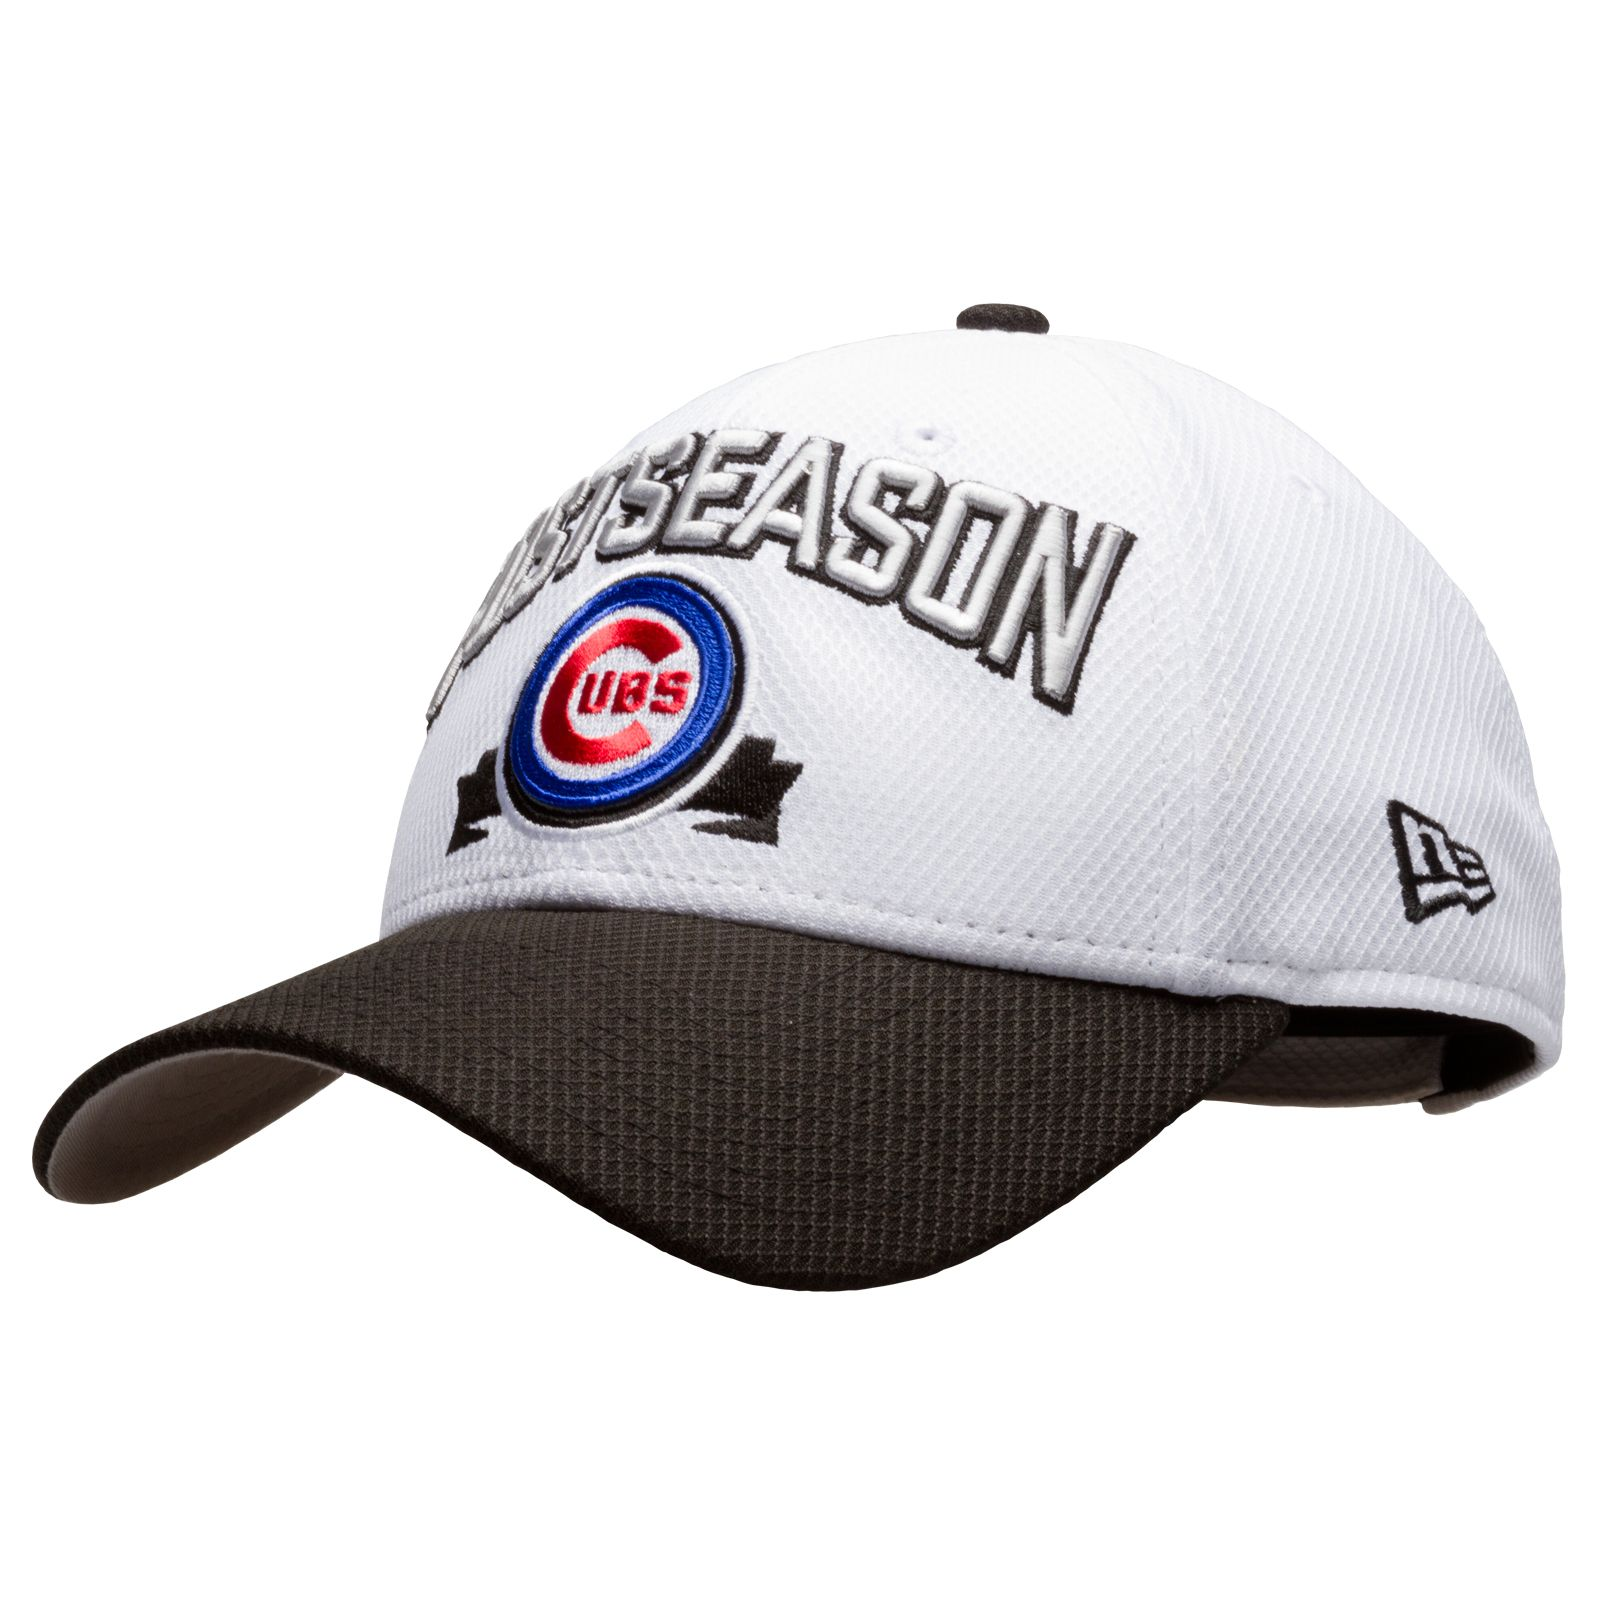 Chicago Cubs White and Black